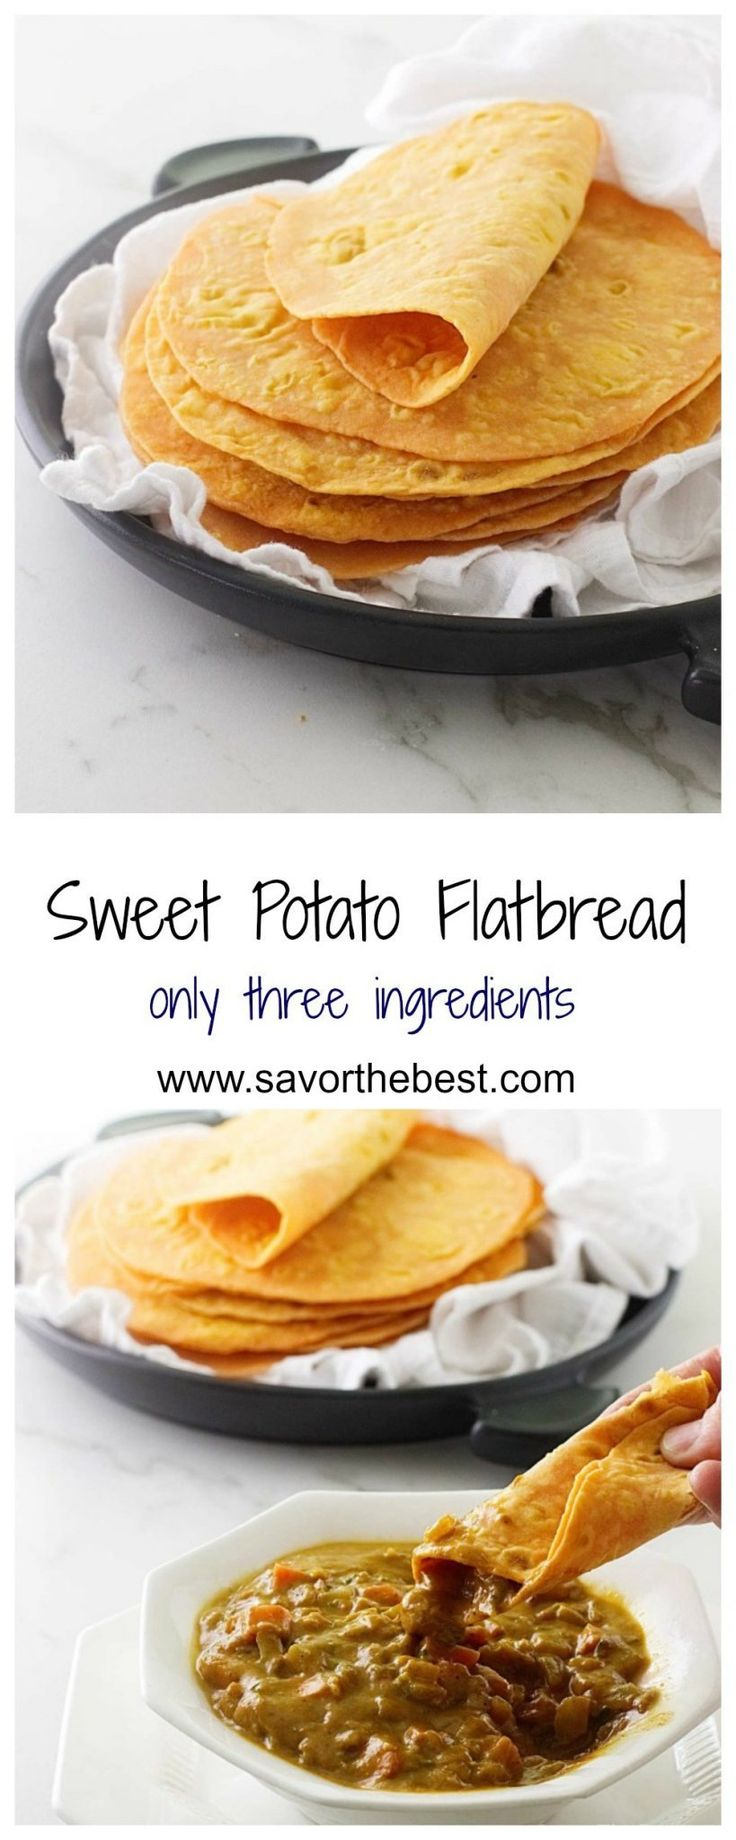 This sweet potato flatbread only takes three ingredients, sweet potatoes, flour and salt. It is soft, flexible and tastes amazing, perfect as a wrap or dip.